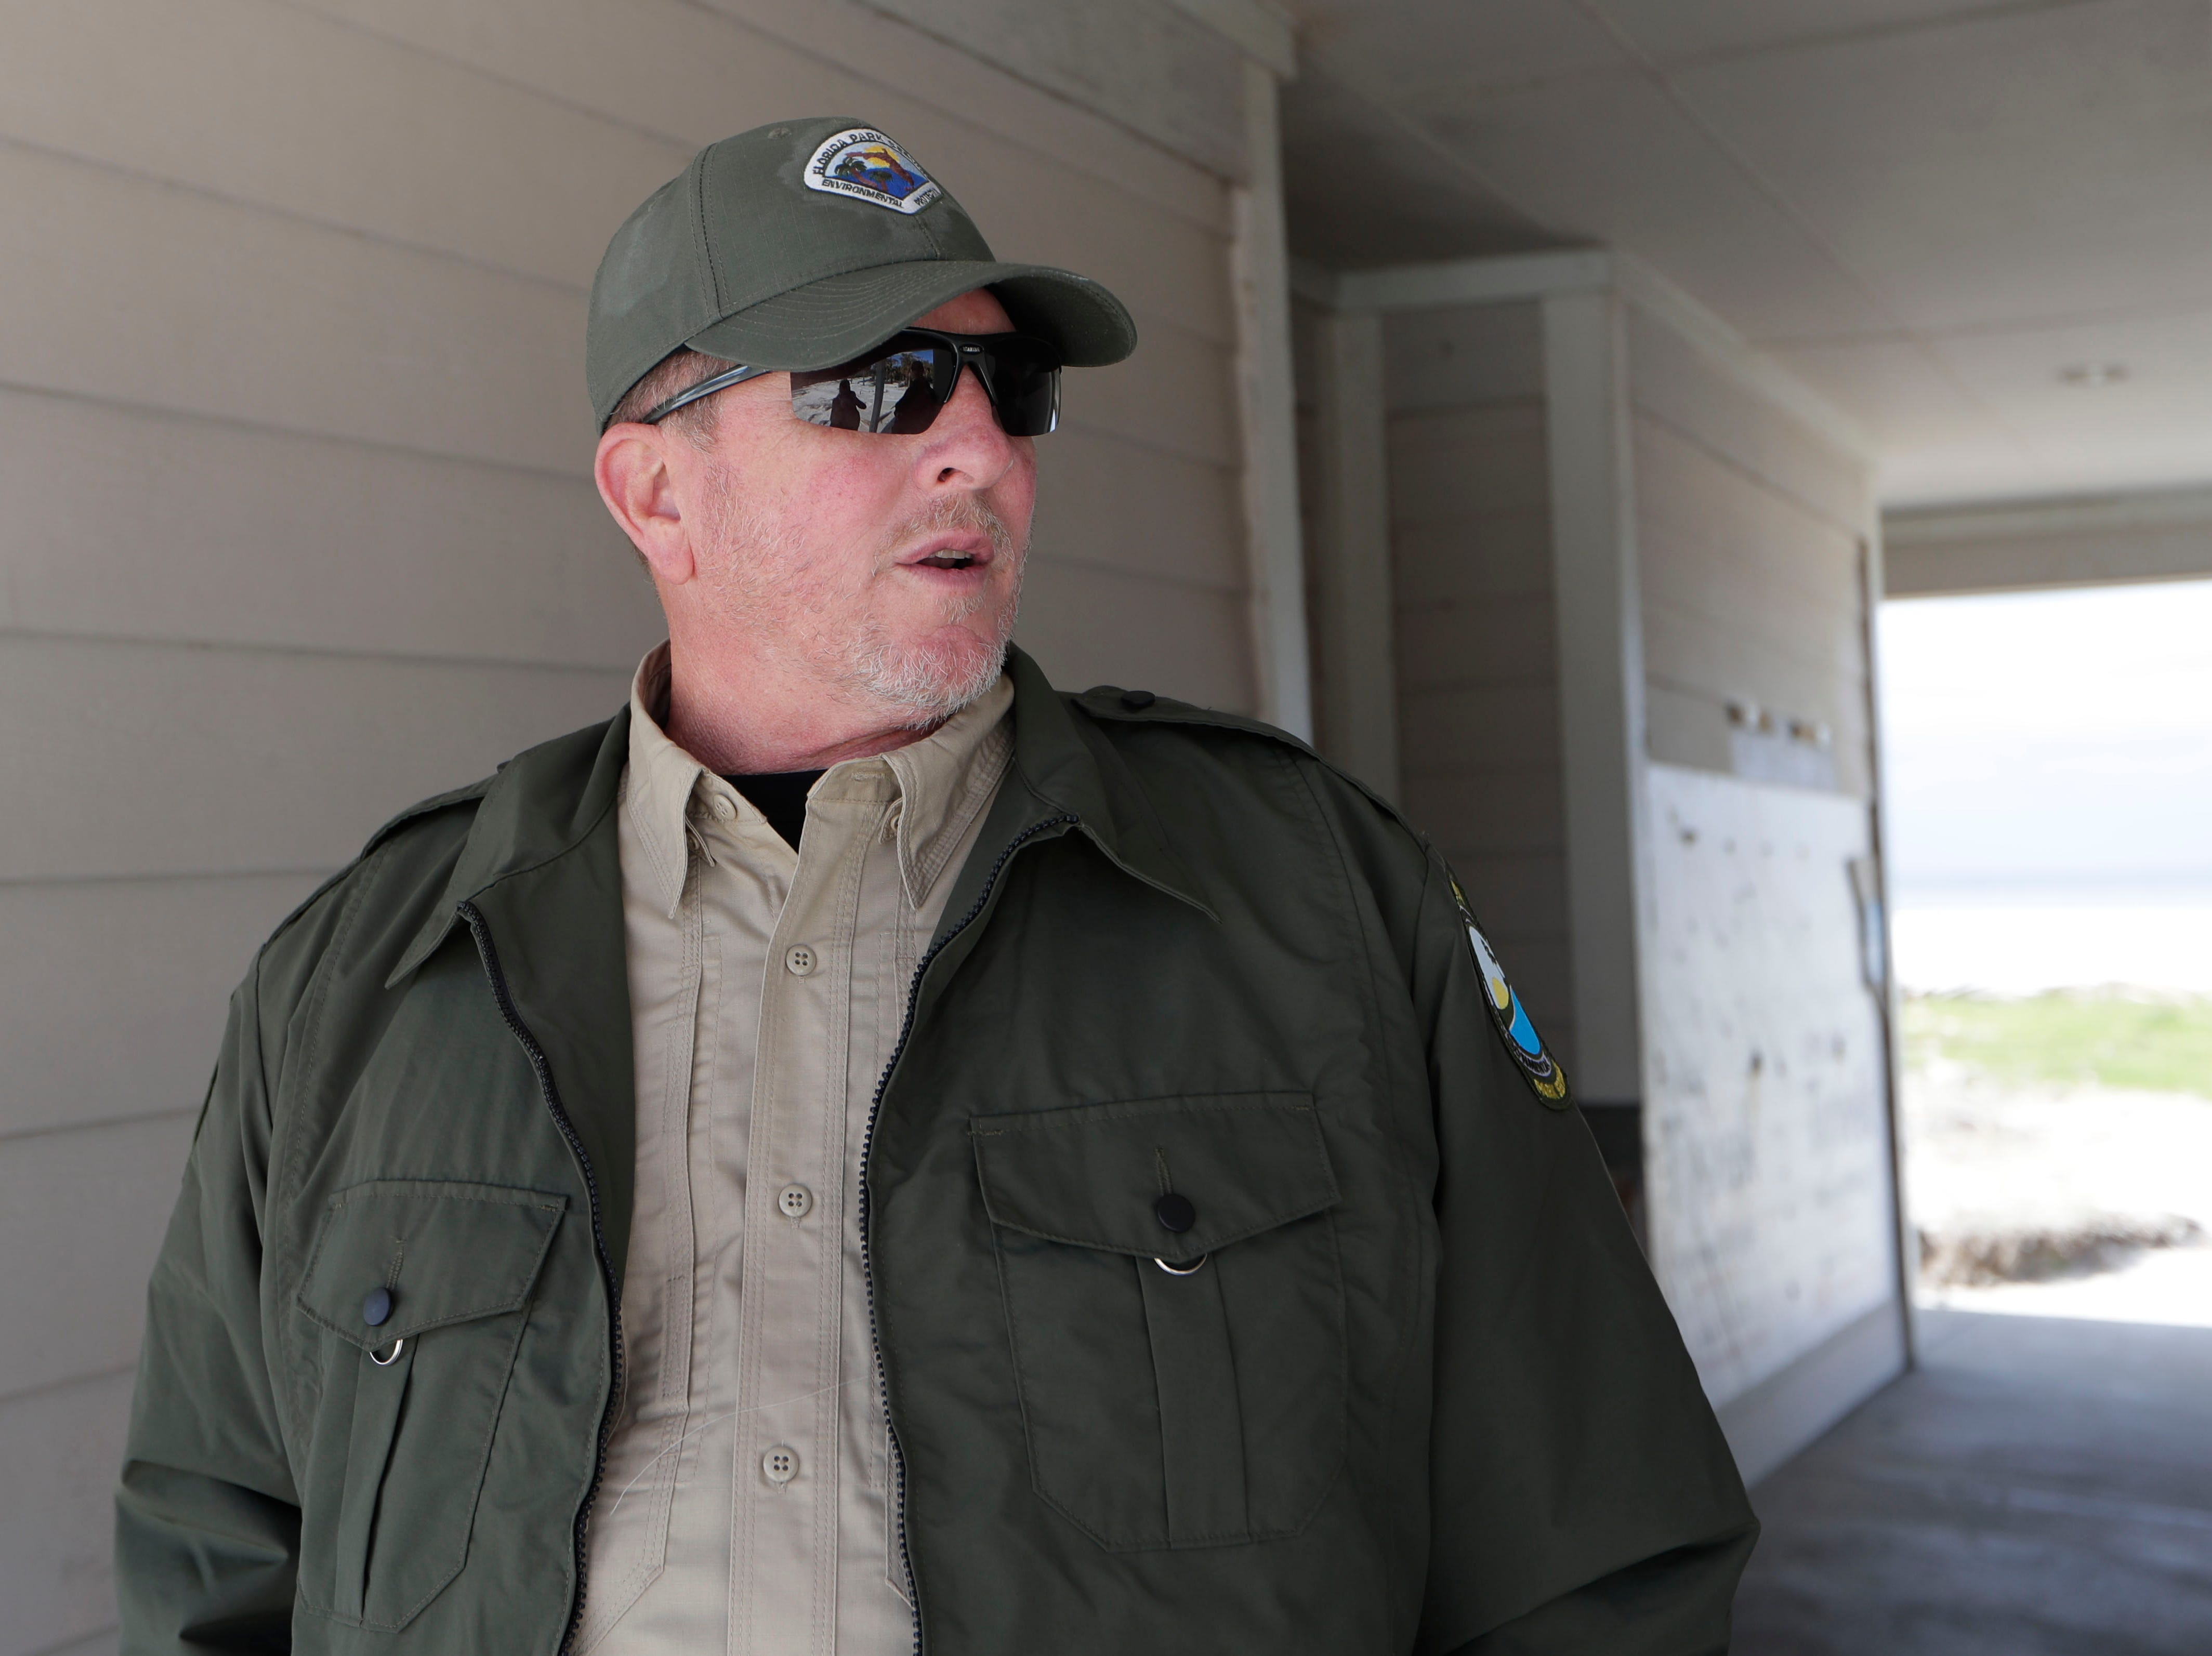 Chuck Hatcher, assistant director of field operations for the Florida Department of Environmental Protection, talks about what he has seen while walking the grounds of St. Joseph Peninsula State Park, Monday, Jan. 14, 2019. Hurricane Michael left the park in total disarray, Oct. 10, 2018.